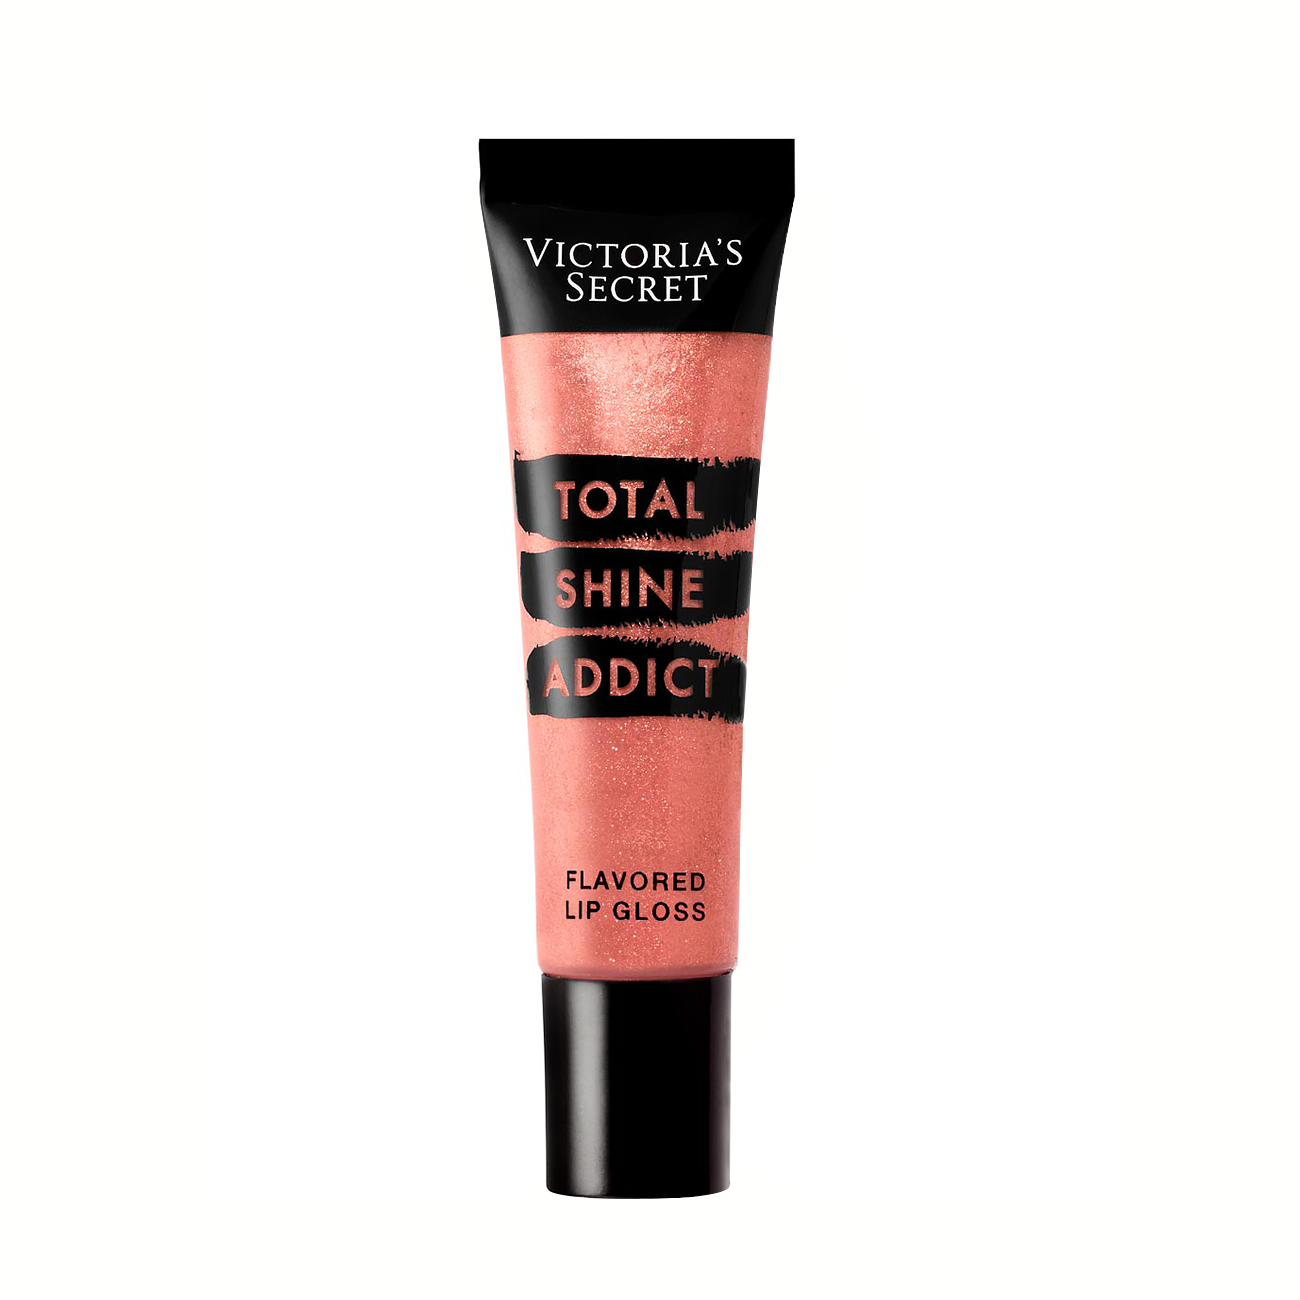 TOTAL SHINE ADDICT LIP GLOSS 13ml imagine